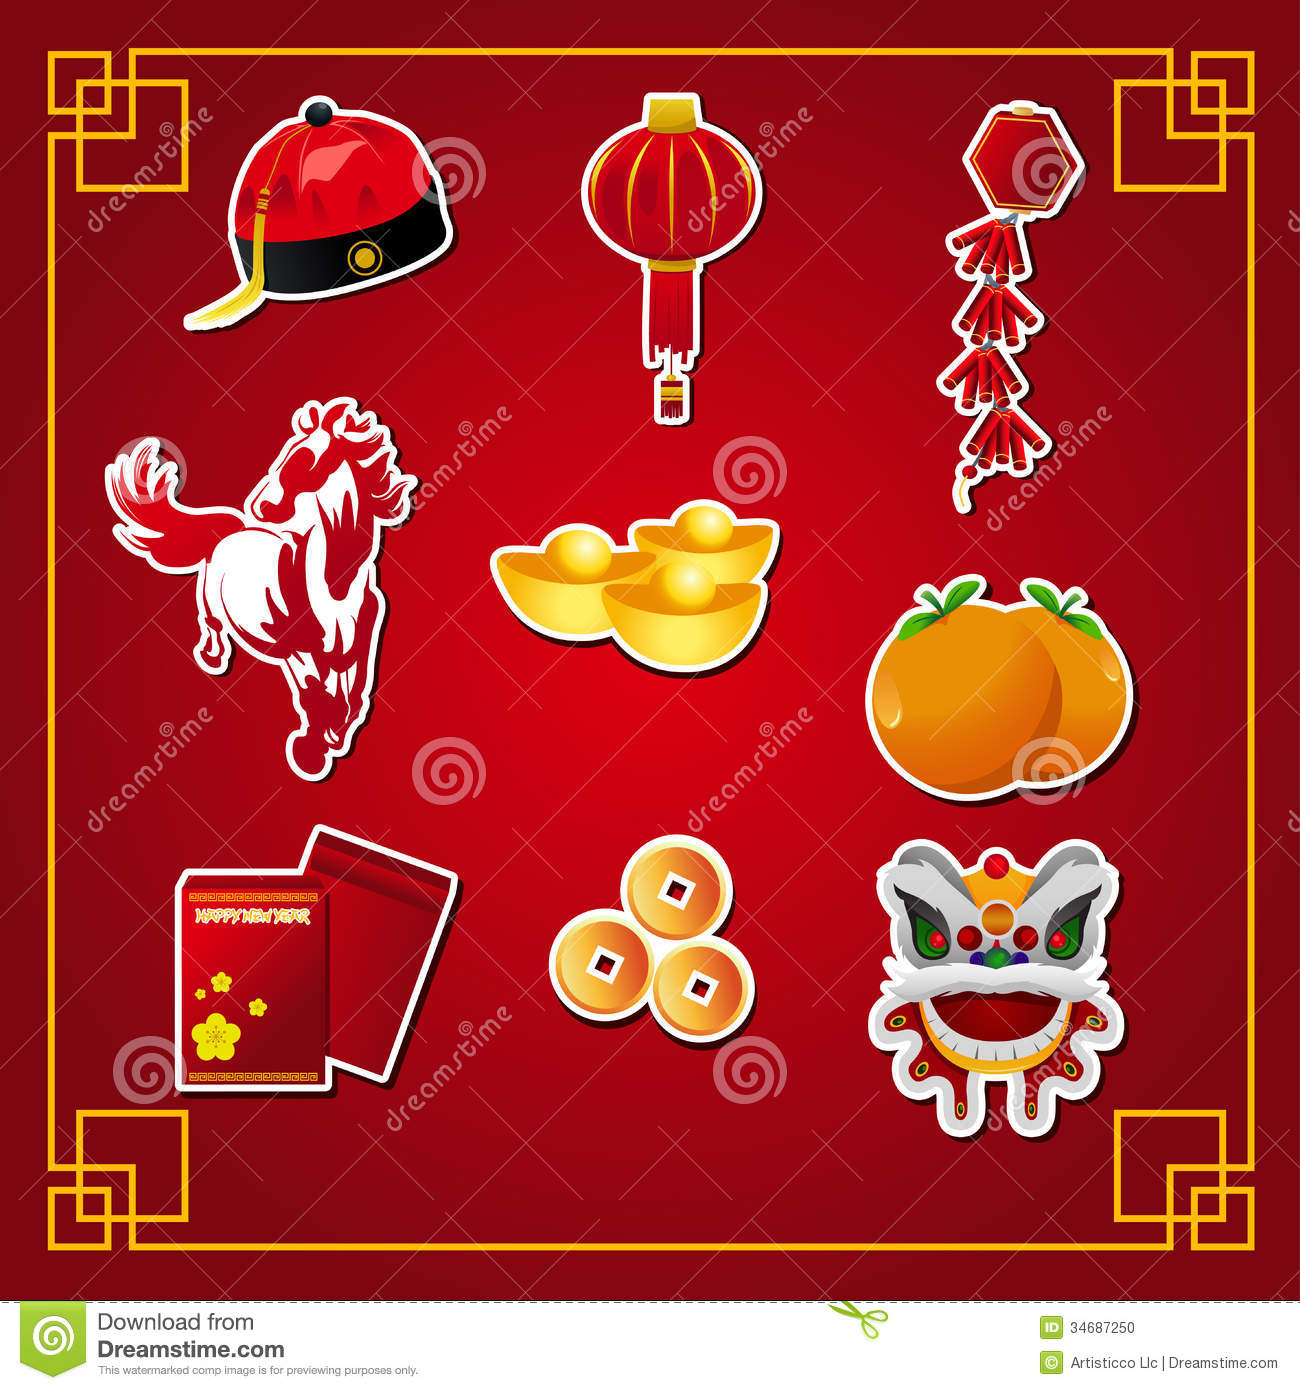 Chinese Calendar Illustration : Chinese new year icons stock vector illustration of gold